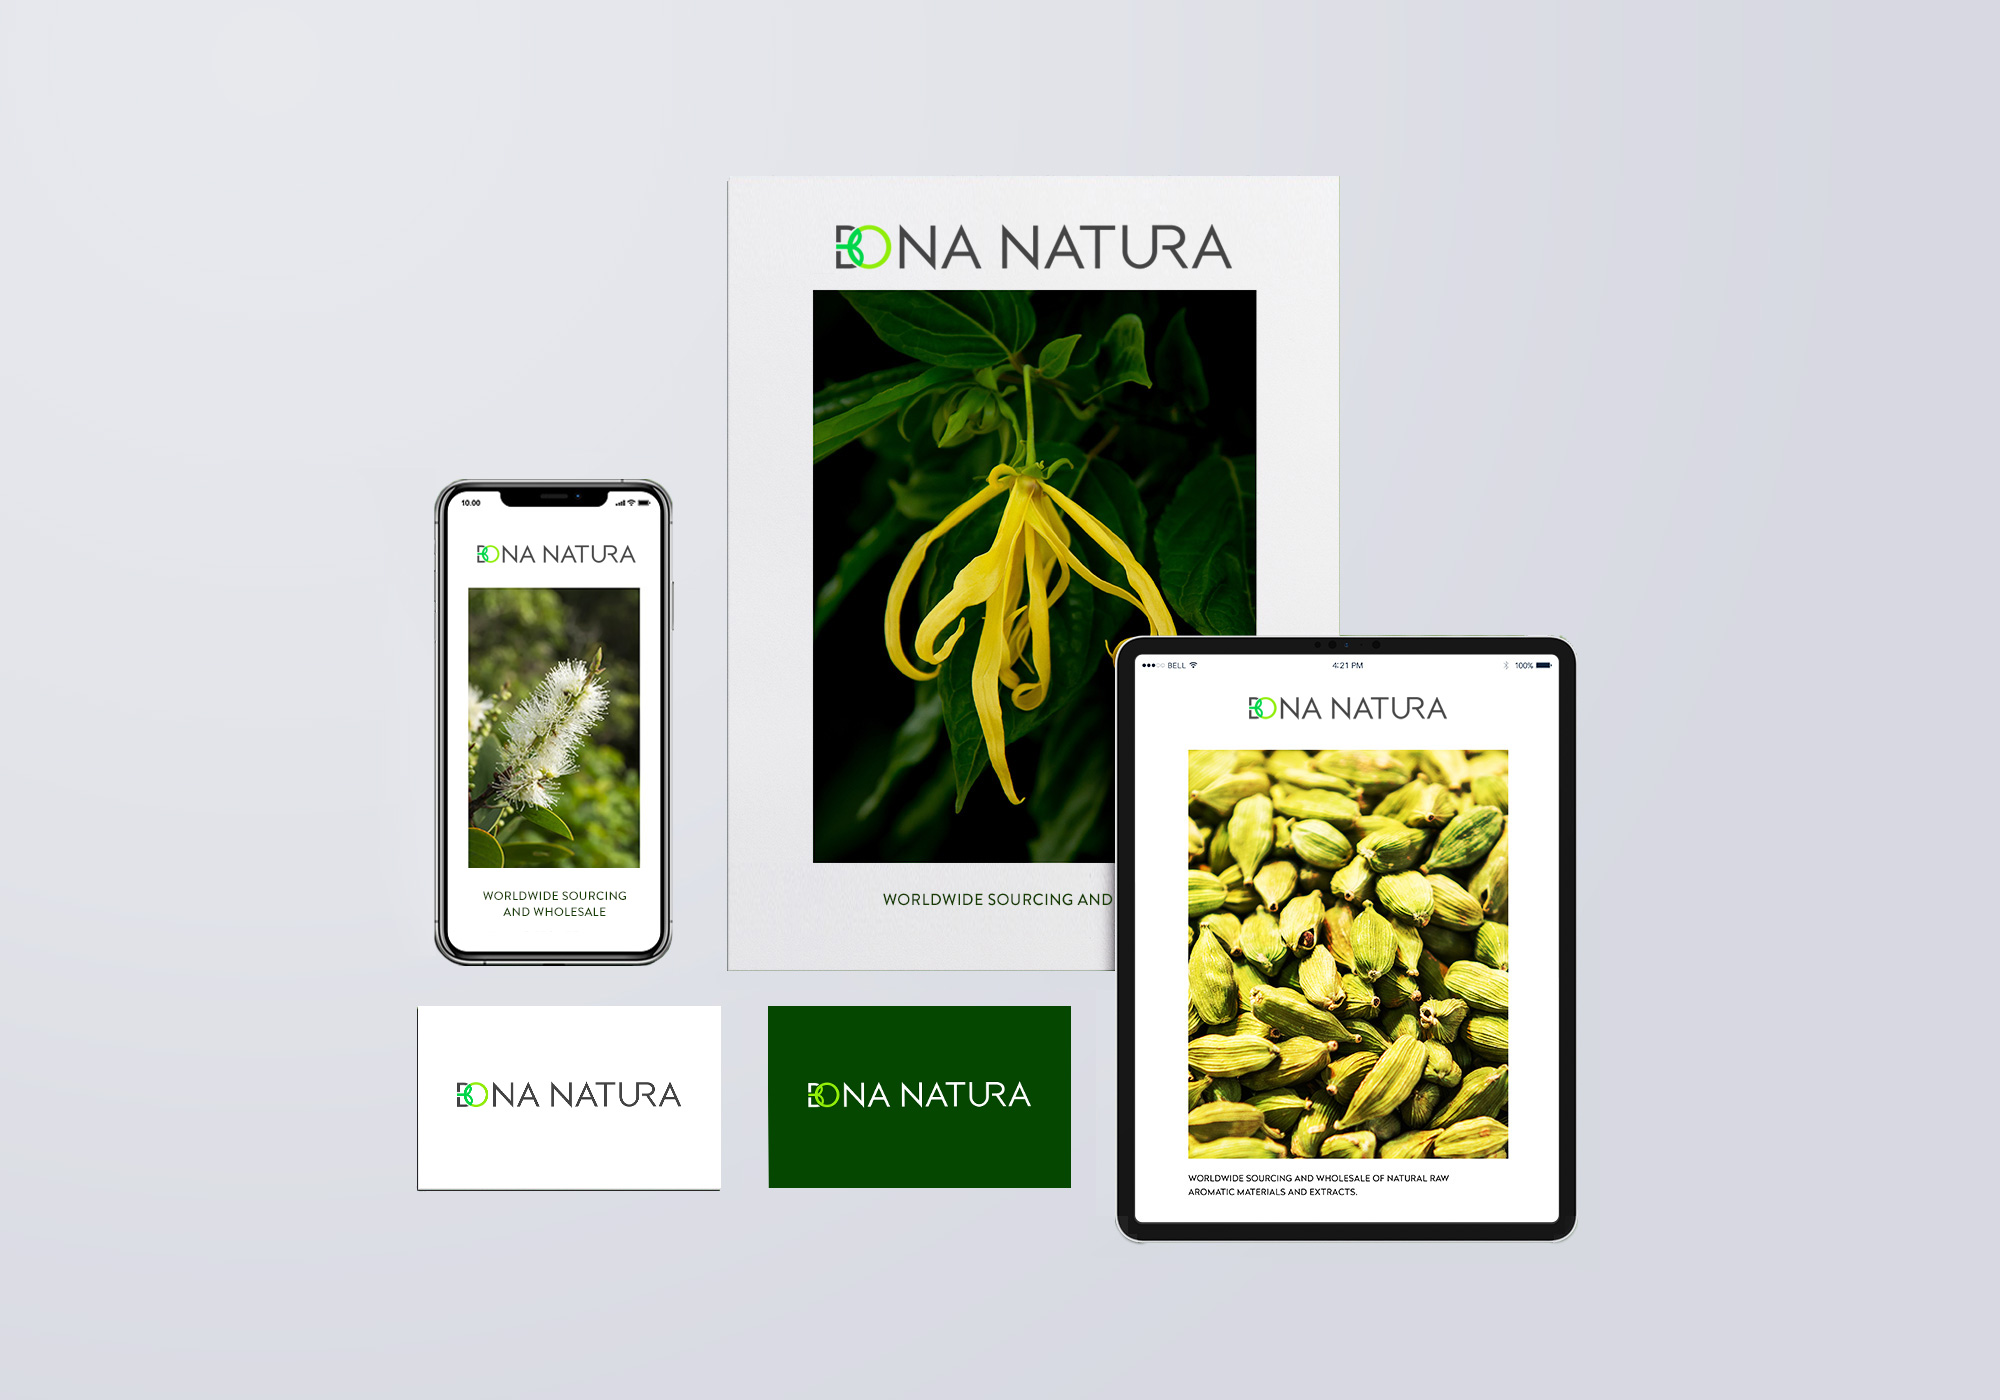 bonanatura_branding_elements